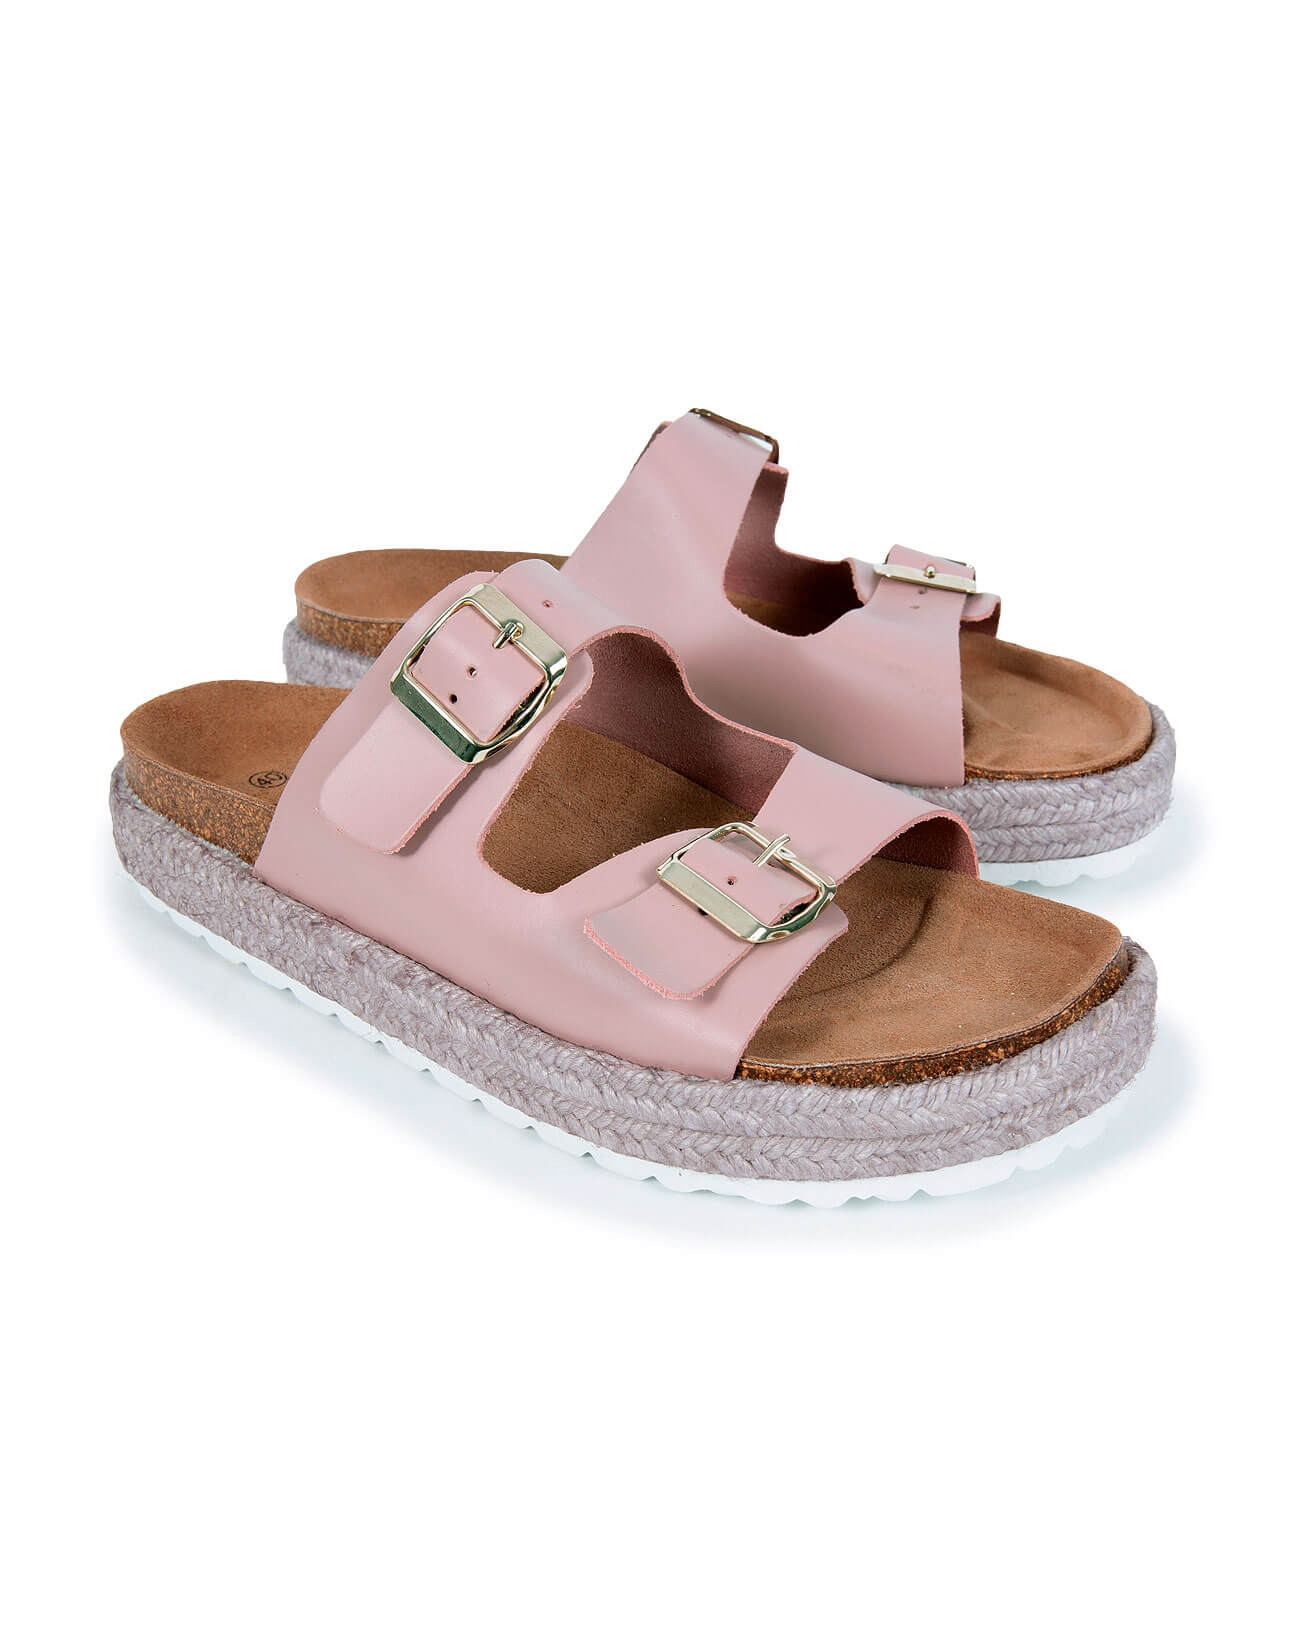 Leather Buckle Sandals - Size 40 - Blush - 1588